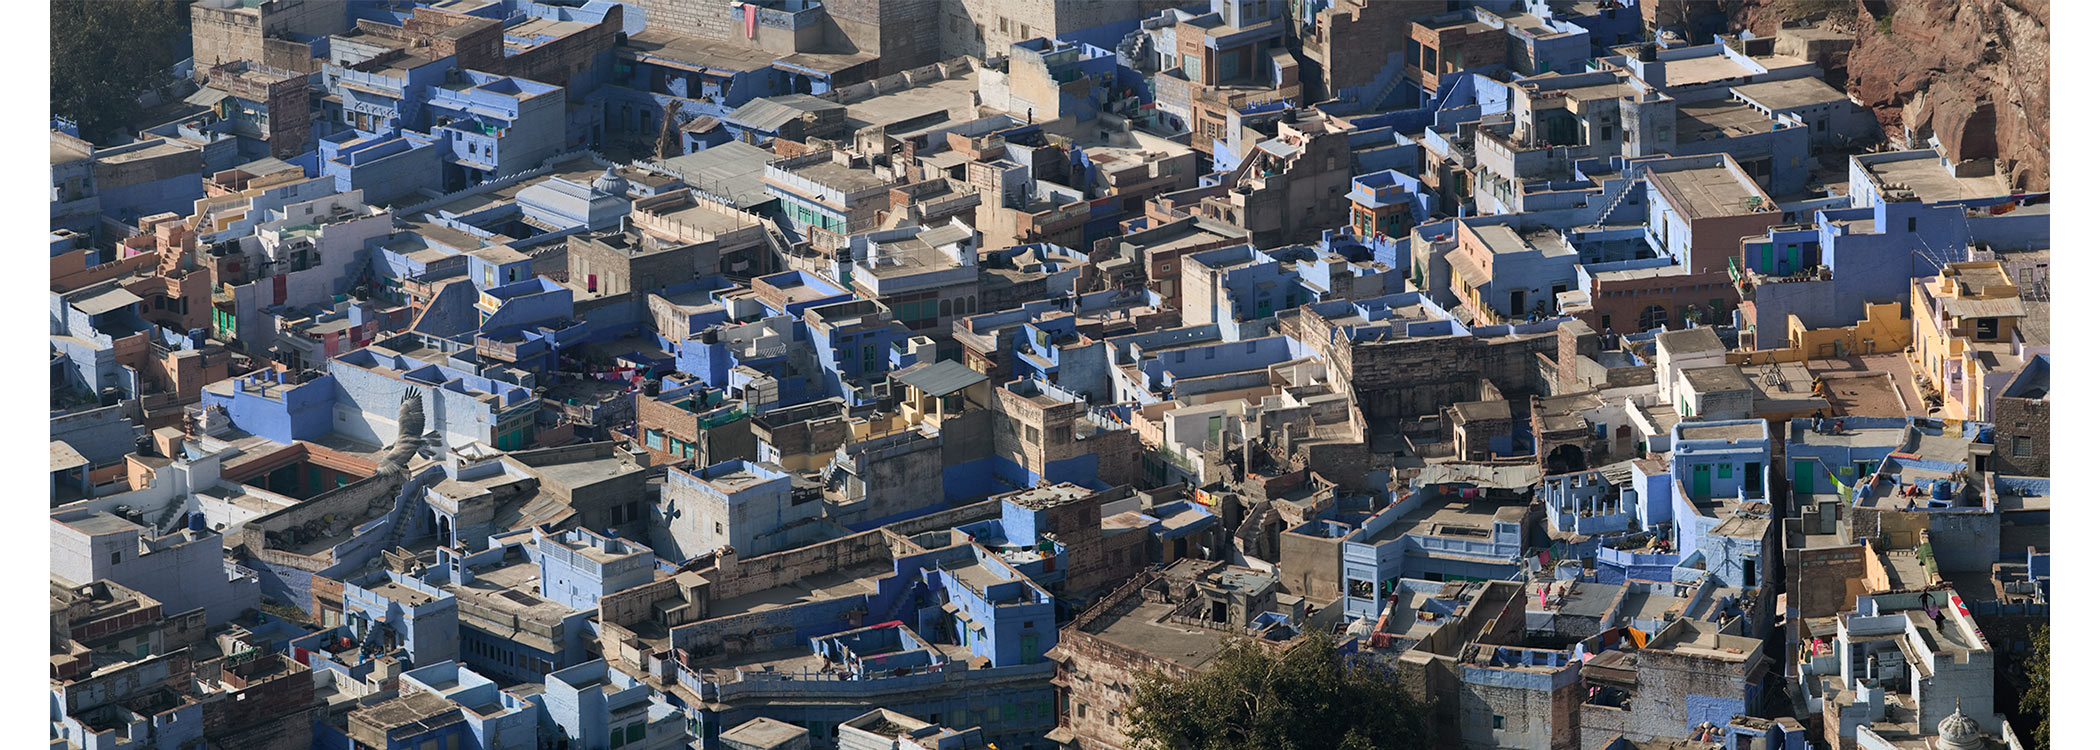 Paul Grundy. Jodhpur